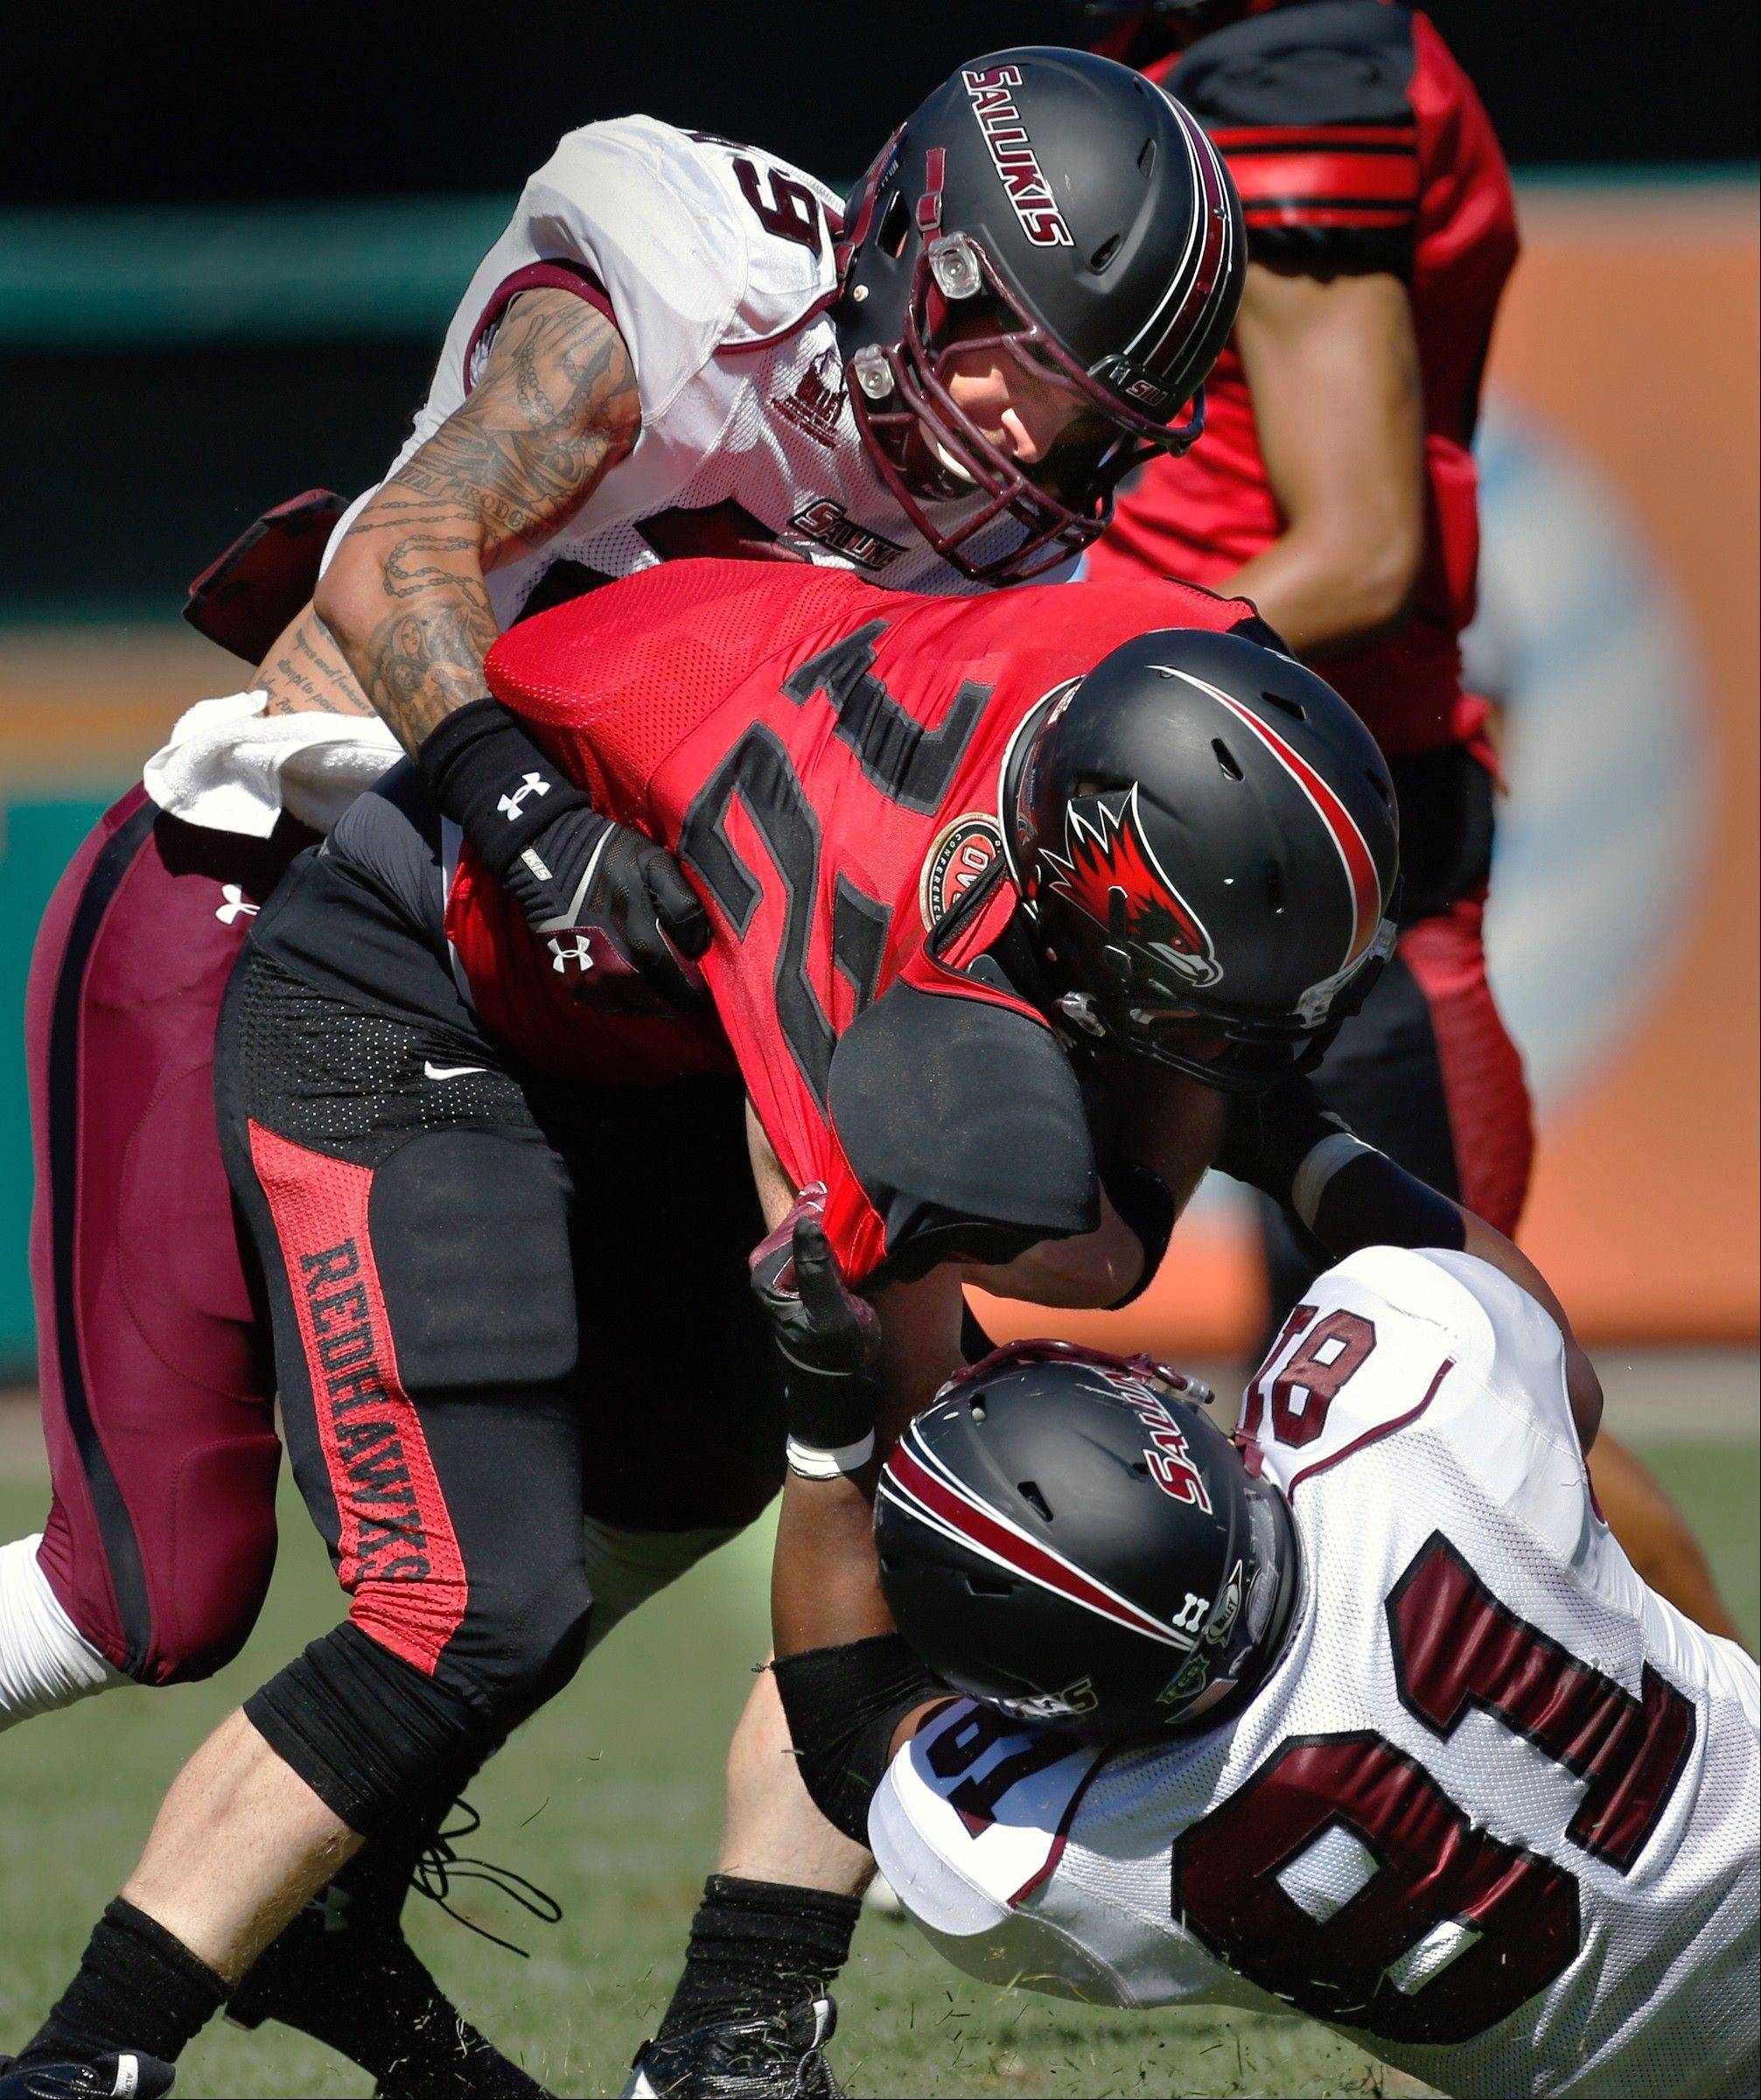 Southern Illinois defenders Boo Rodgers, top, and Leonard Garron bring down Southeast Missouri quarterback Kyle Snyder (12) during the second quarter of Saturday's game at Busch Stadium in St. Louis. SIU won 36-19.